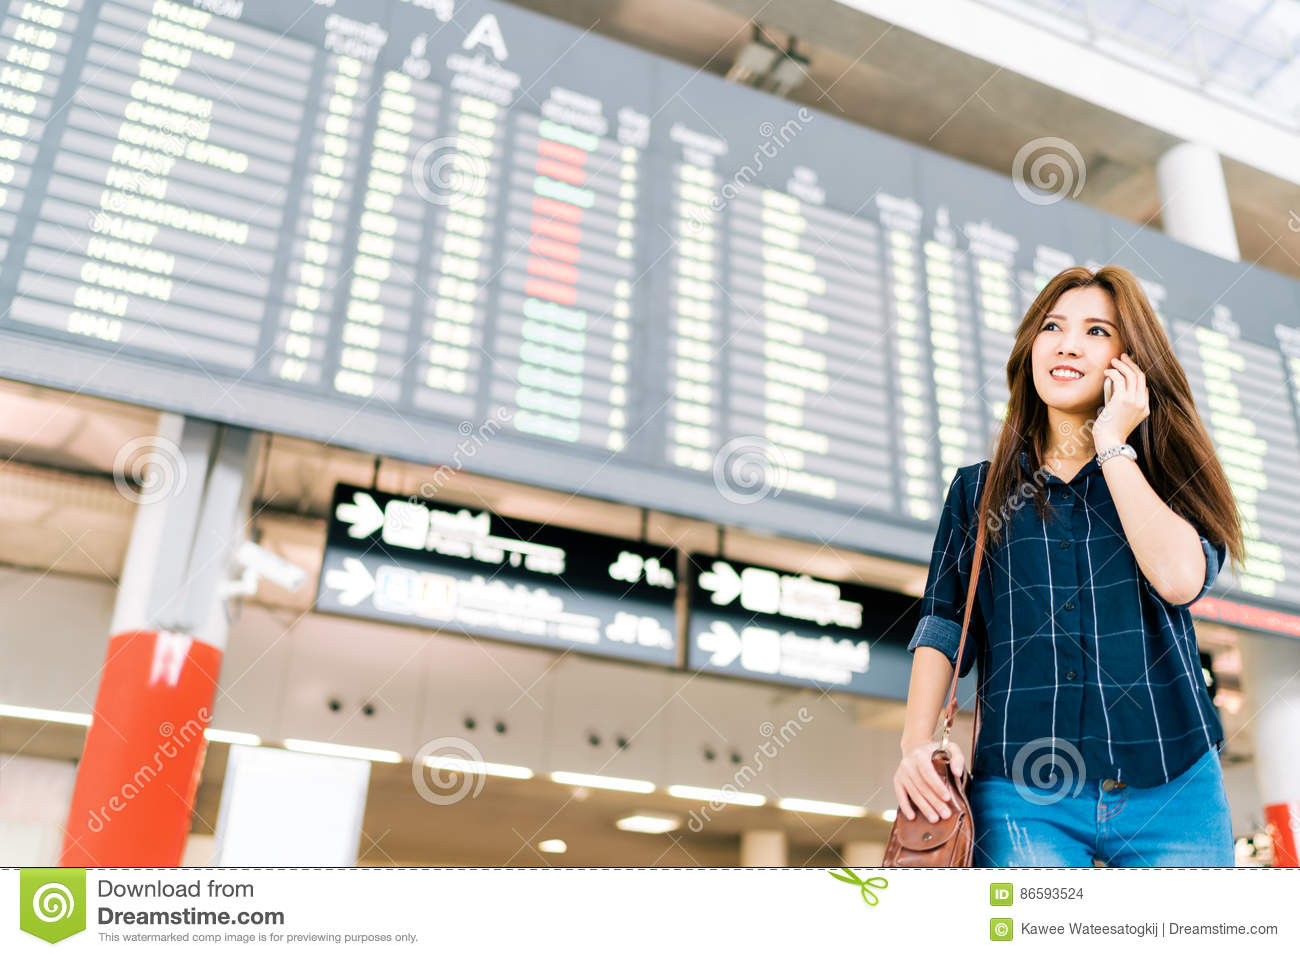 Beautiful Asian woman traveler on mobile phone call at flight information board in airport, holiday vacation travel concept